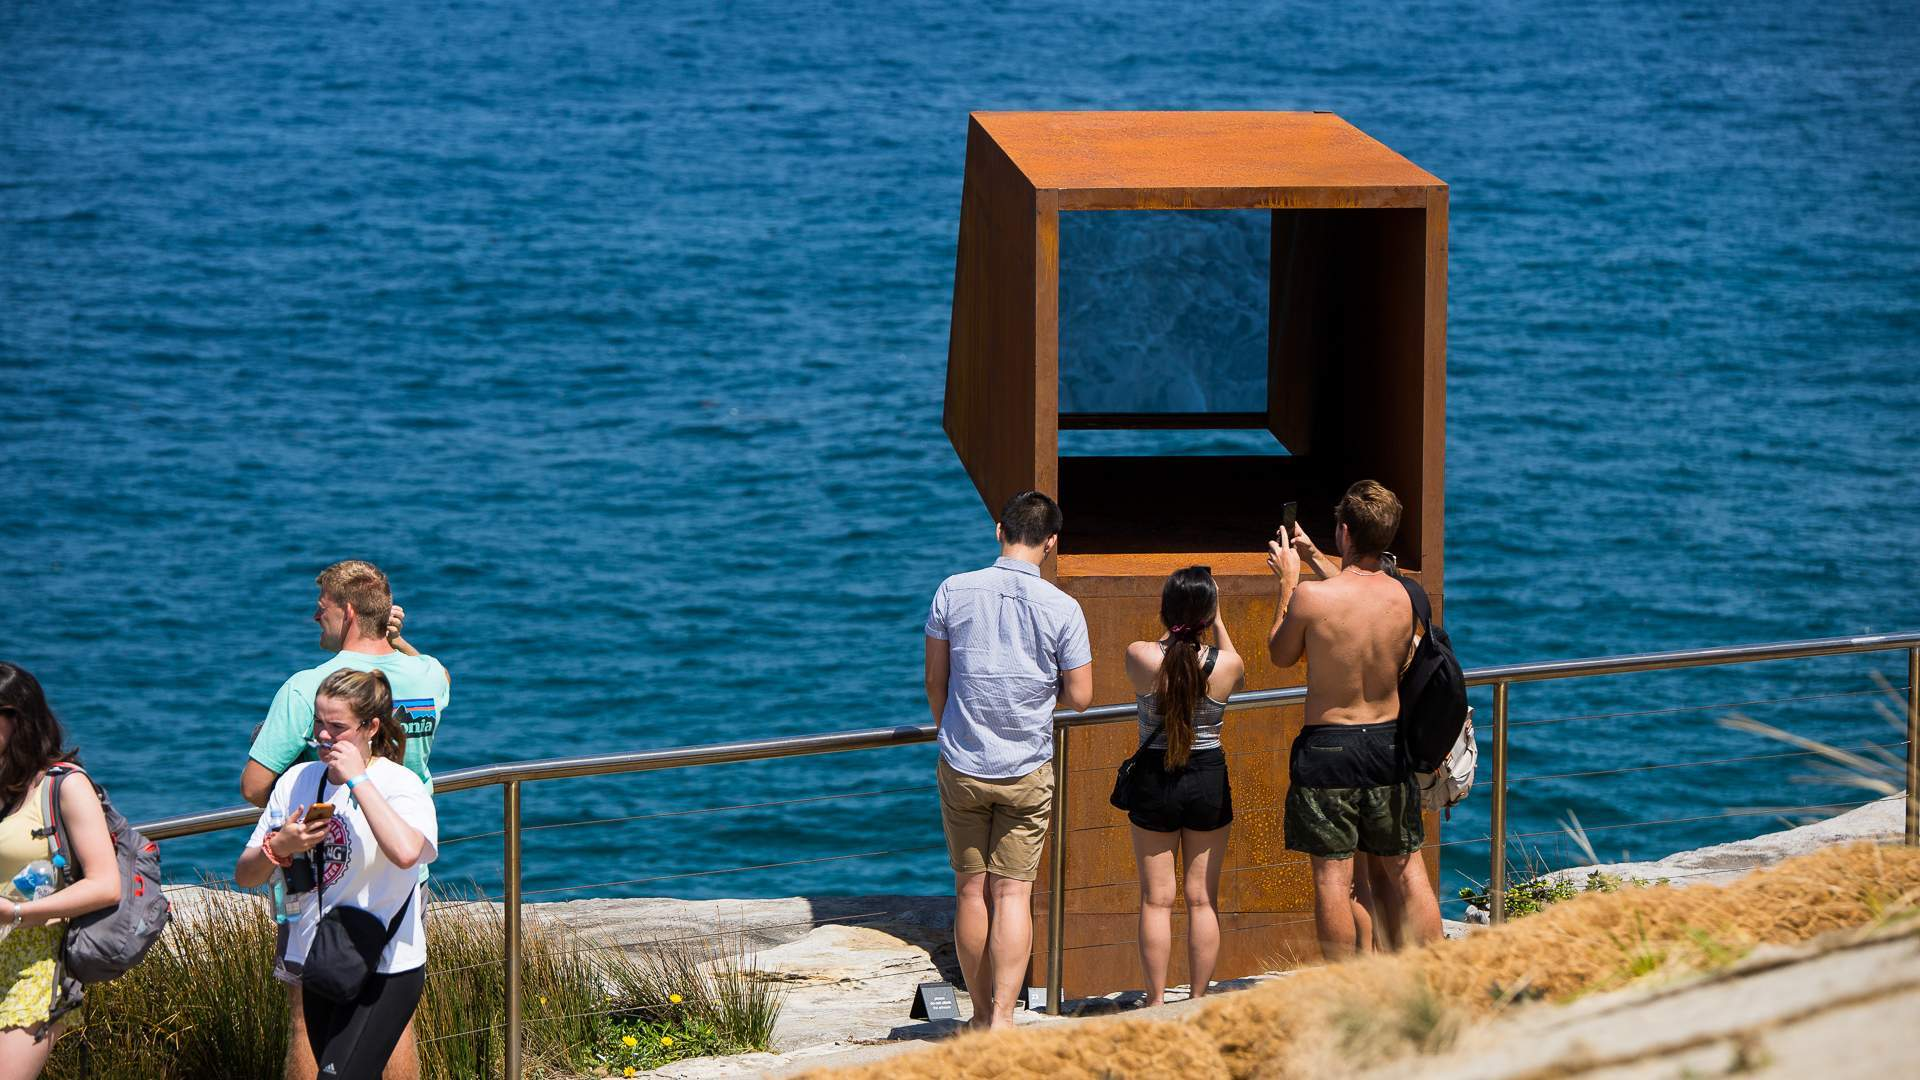 Sydney's Super-Popular 'Sculpture by the Sea' Is Set to Return to Bondi This October